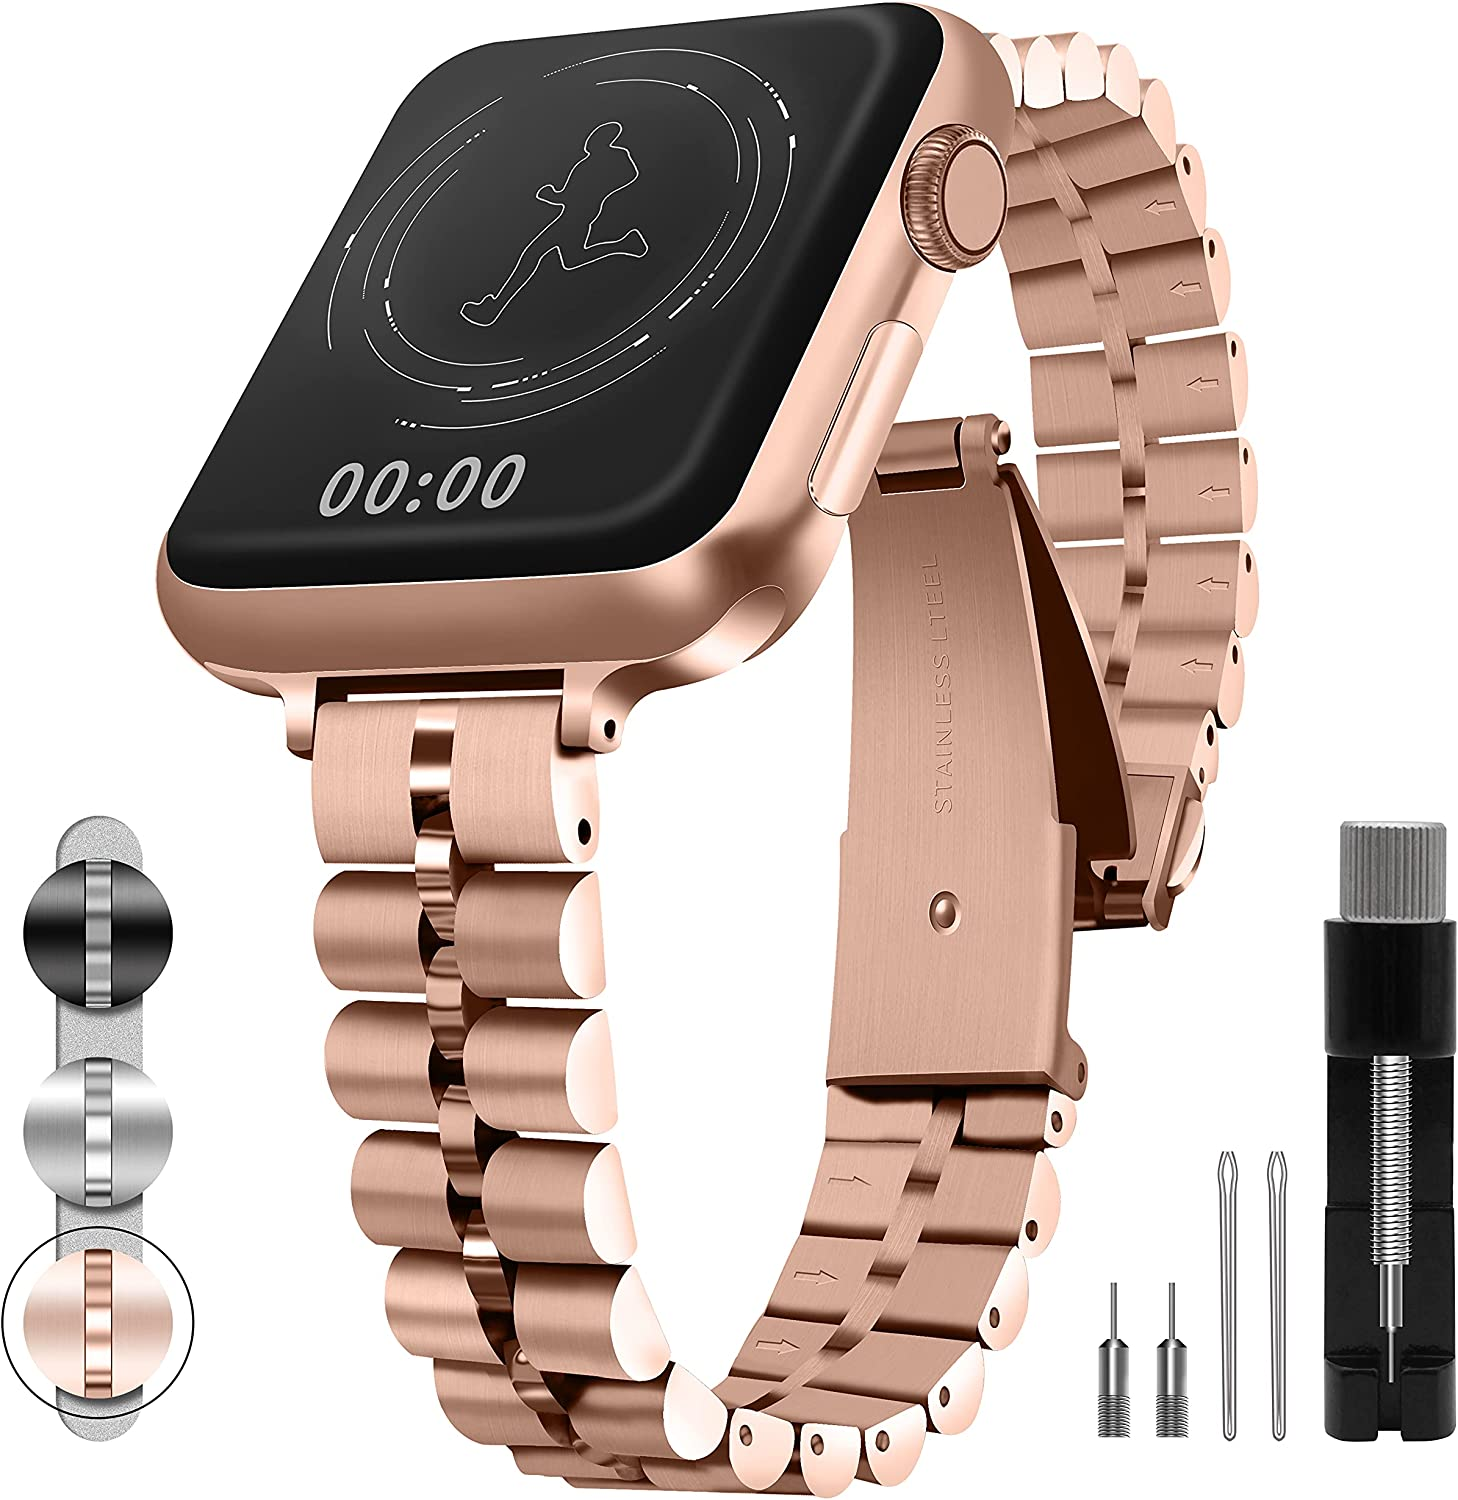 QUNDAXI Watch band Compatible with Apple watch 38mm 40mm 42mm 44mm Metal stainless bands women/men Wristband apply to Iwatch Se/6/5/4/3/2/1 series strap